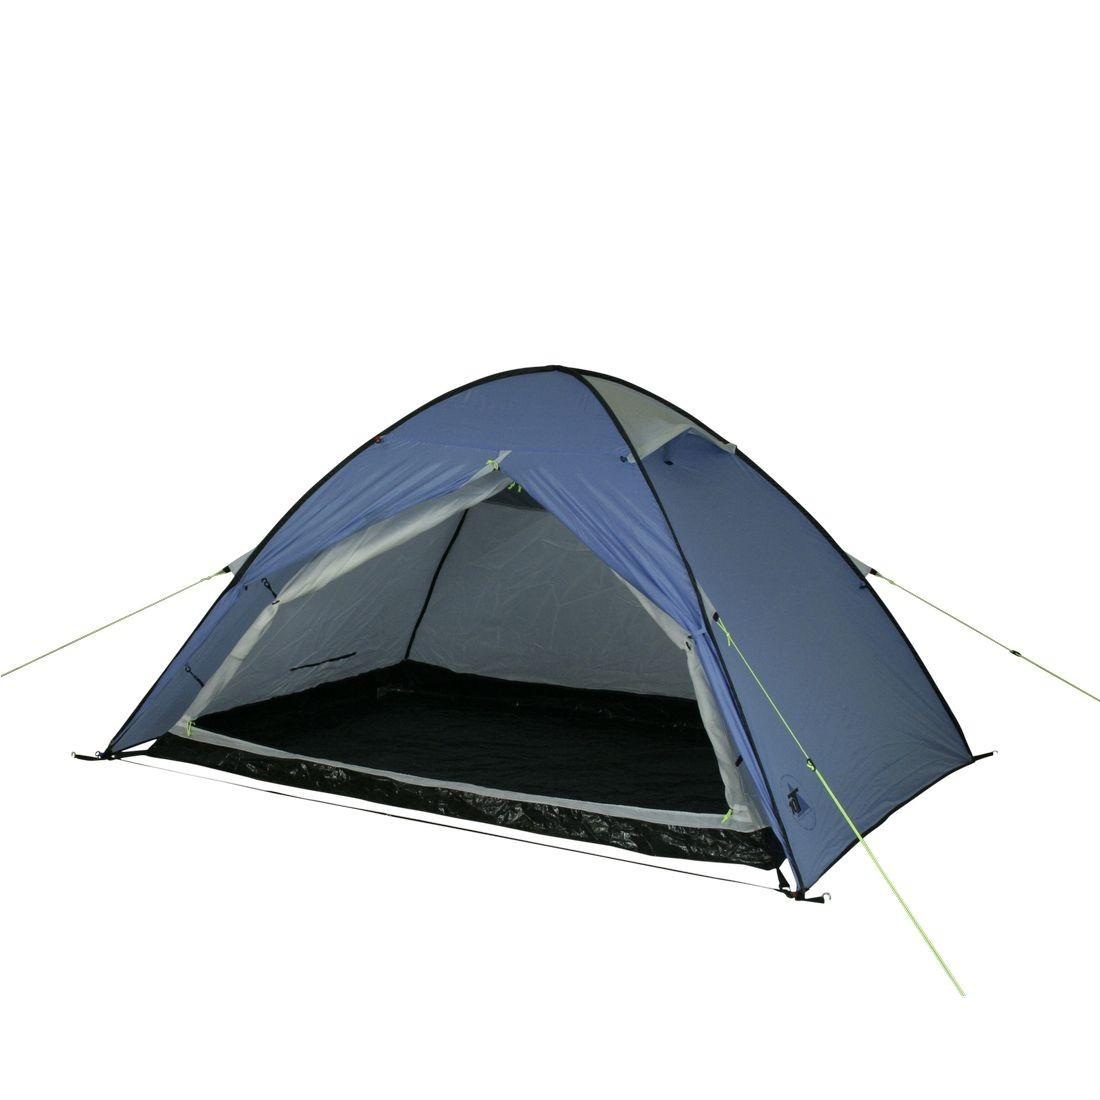 10T Campingzelt Easy 2 blaues Pop-Up Wurfzelt